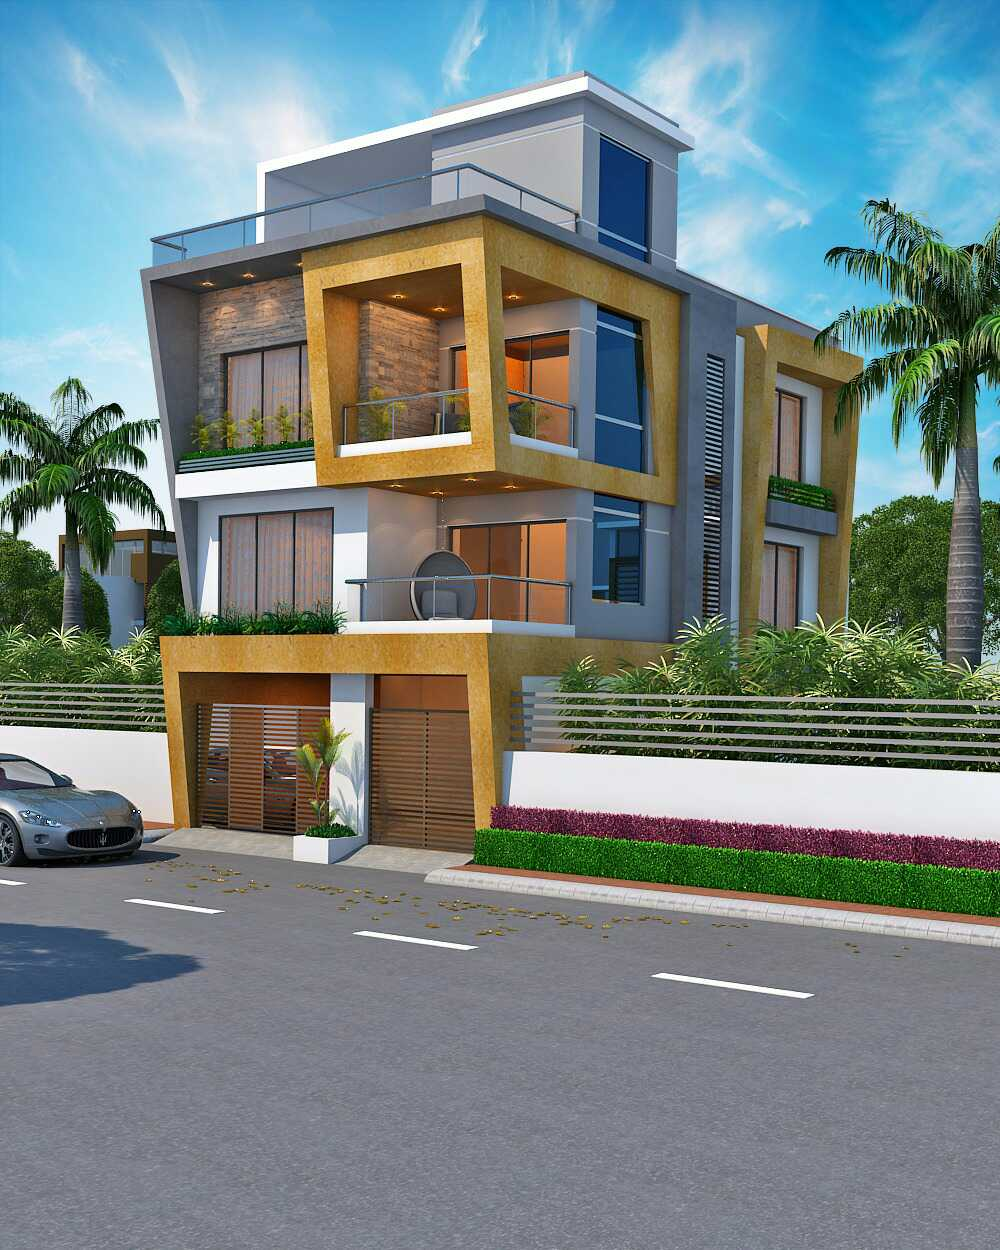 project consultants prism architect surat gujarat india services